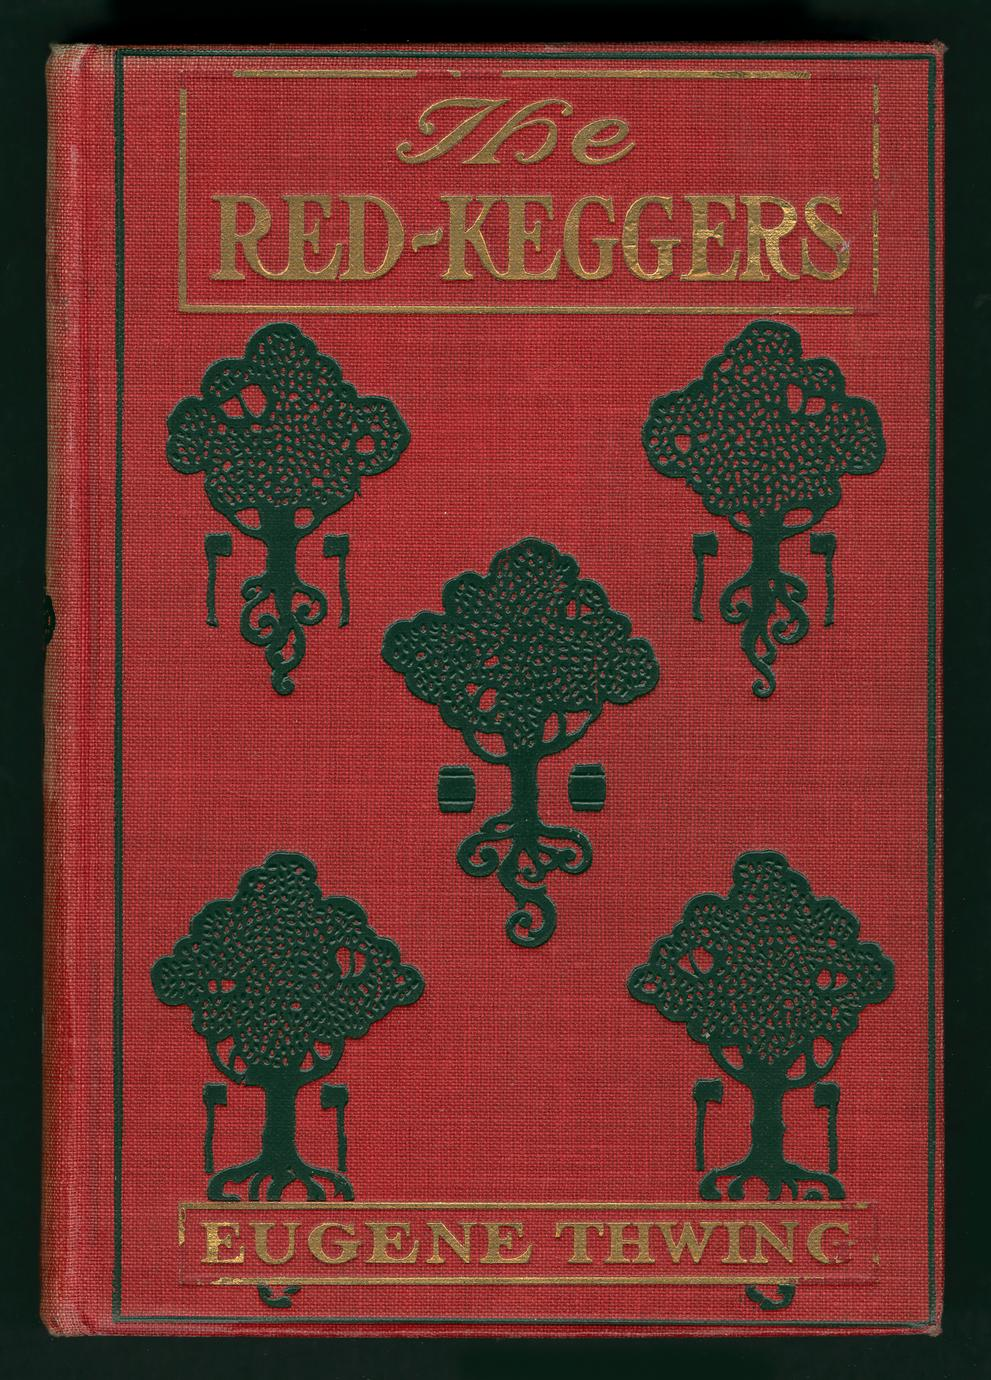 The Red-Keggers (1 of 2)